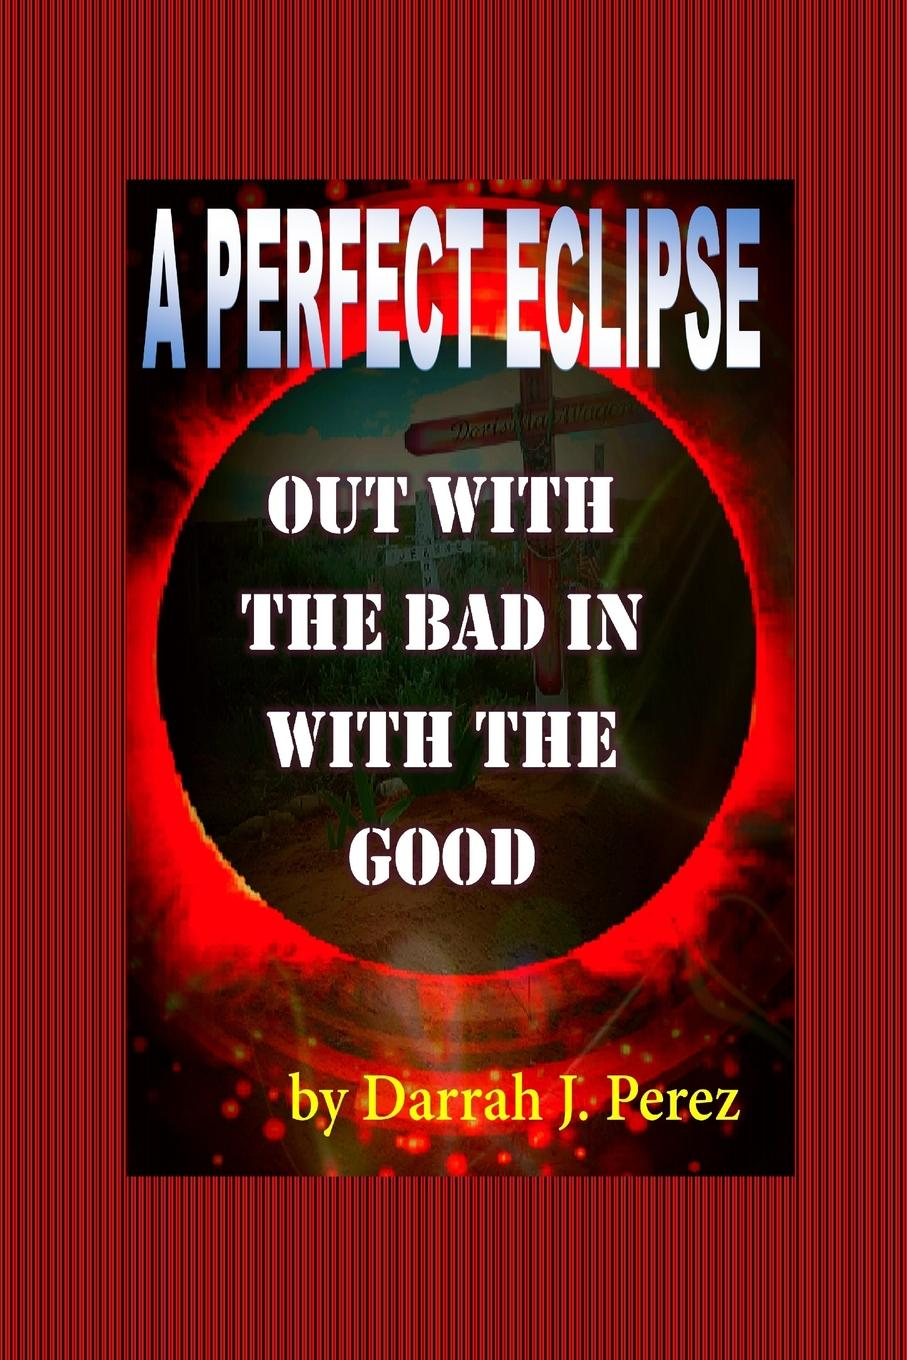 Darrah J. Perez Out with the BAD IN with the GOOD. A PERFECT ECLIPSE lynn smith darrah perez dancing with the queen of circumstance